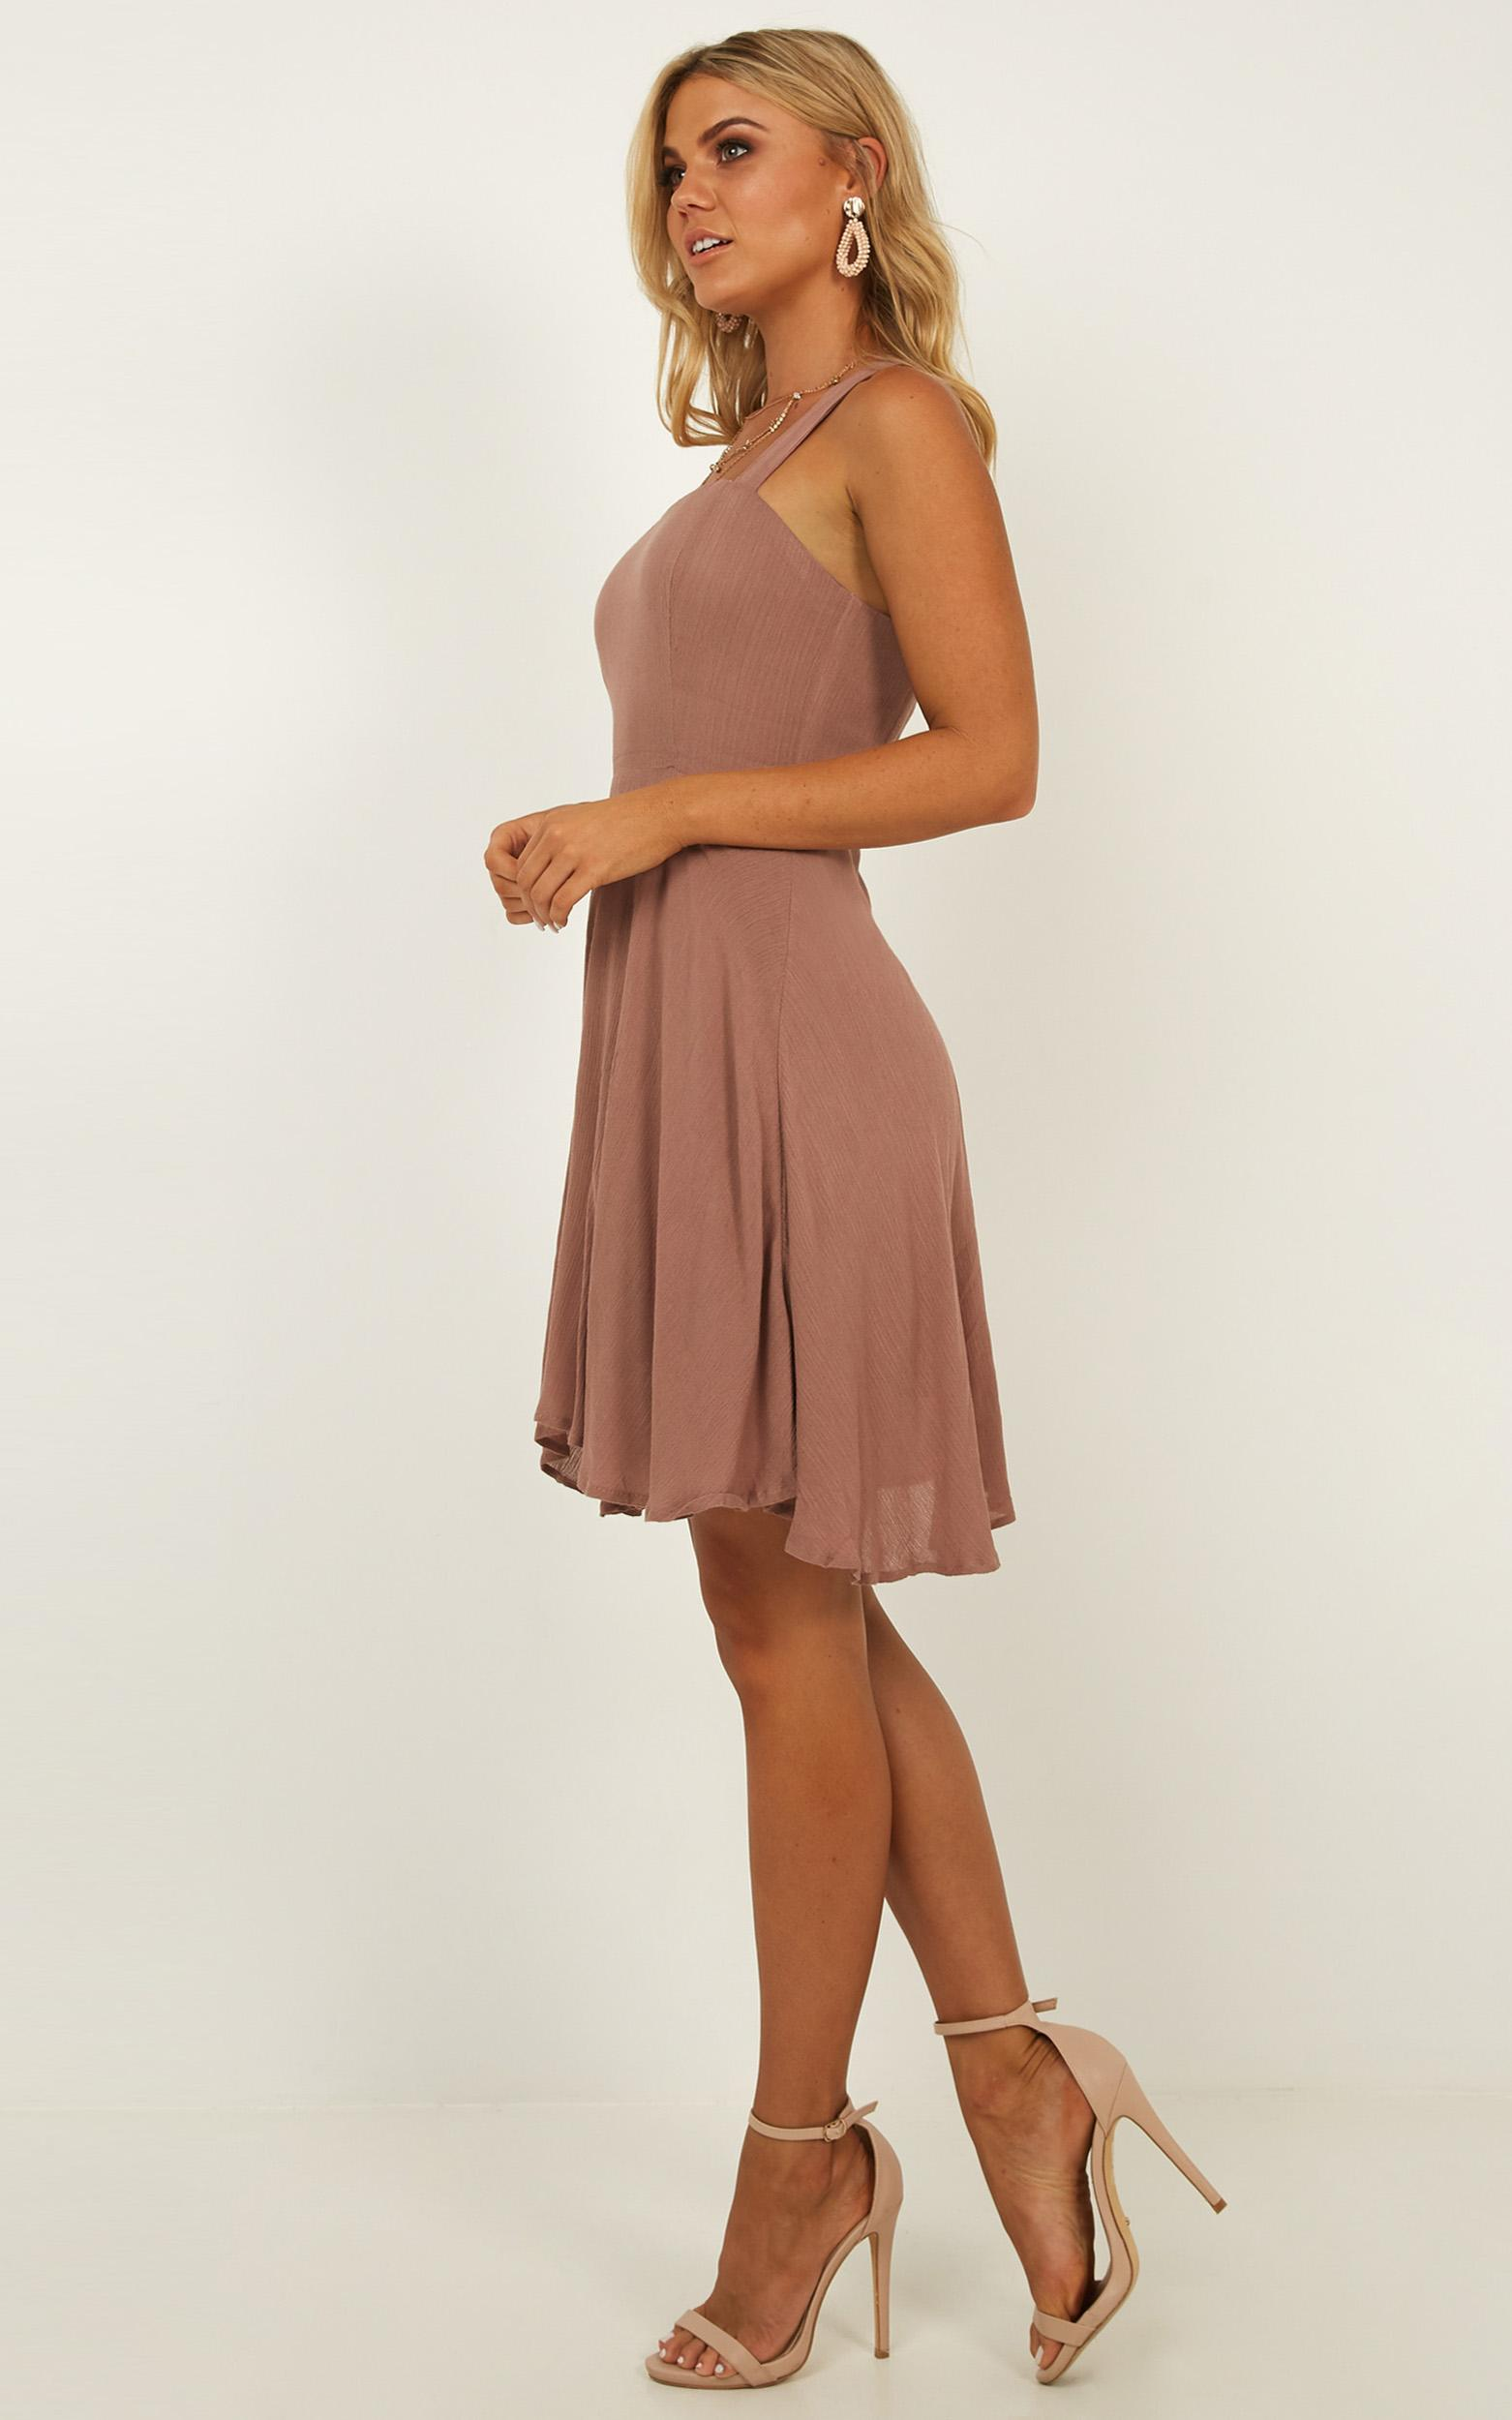 Soaring For You Dress in mocha - 12 (L), Mocha, hi-res image number null